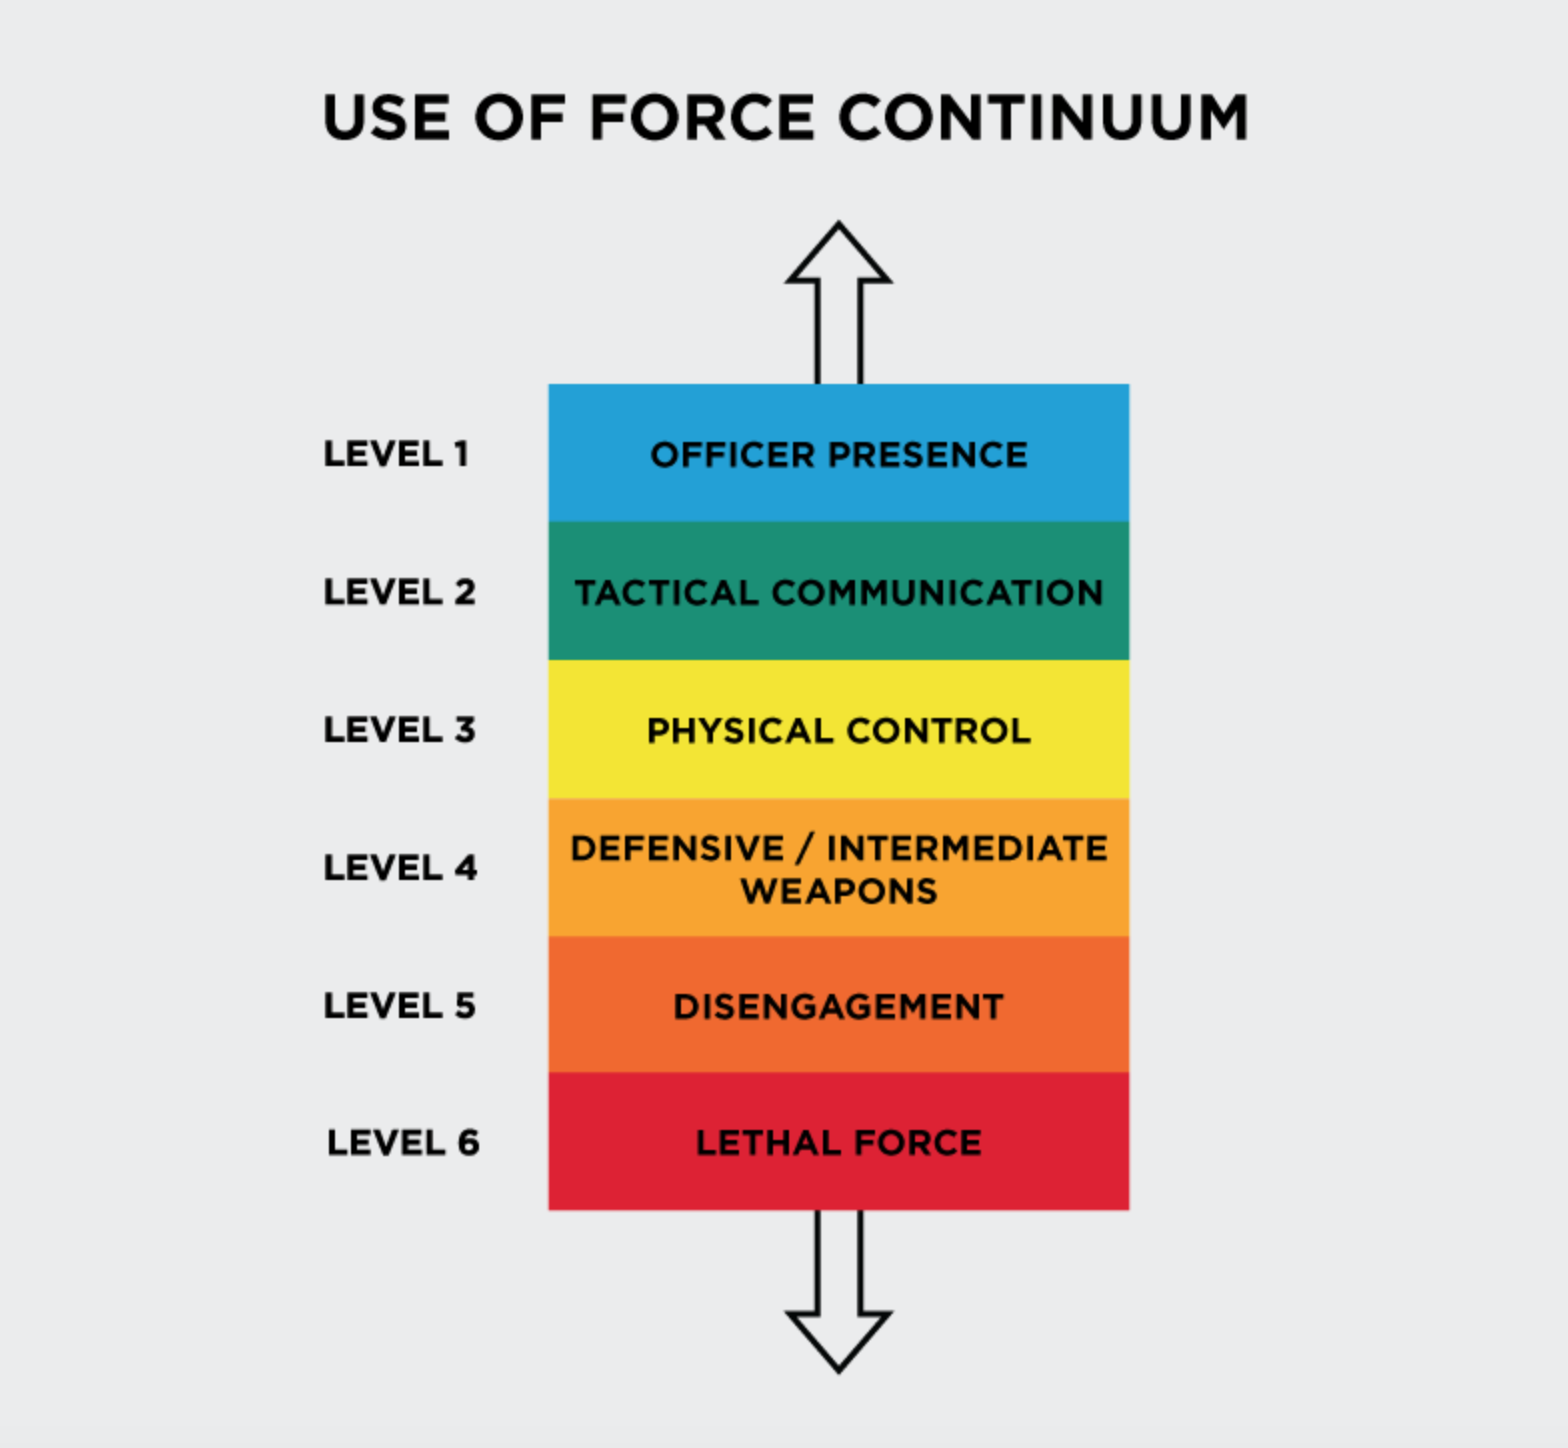 A diagram showing the levels of Police use of force